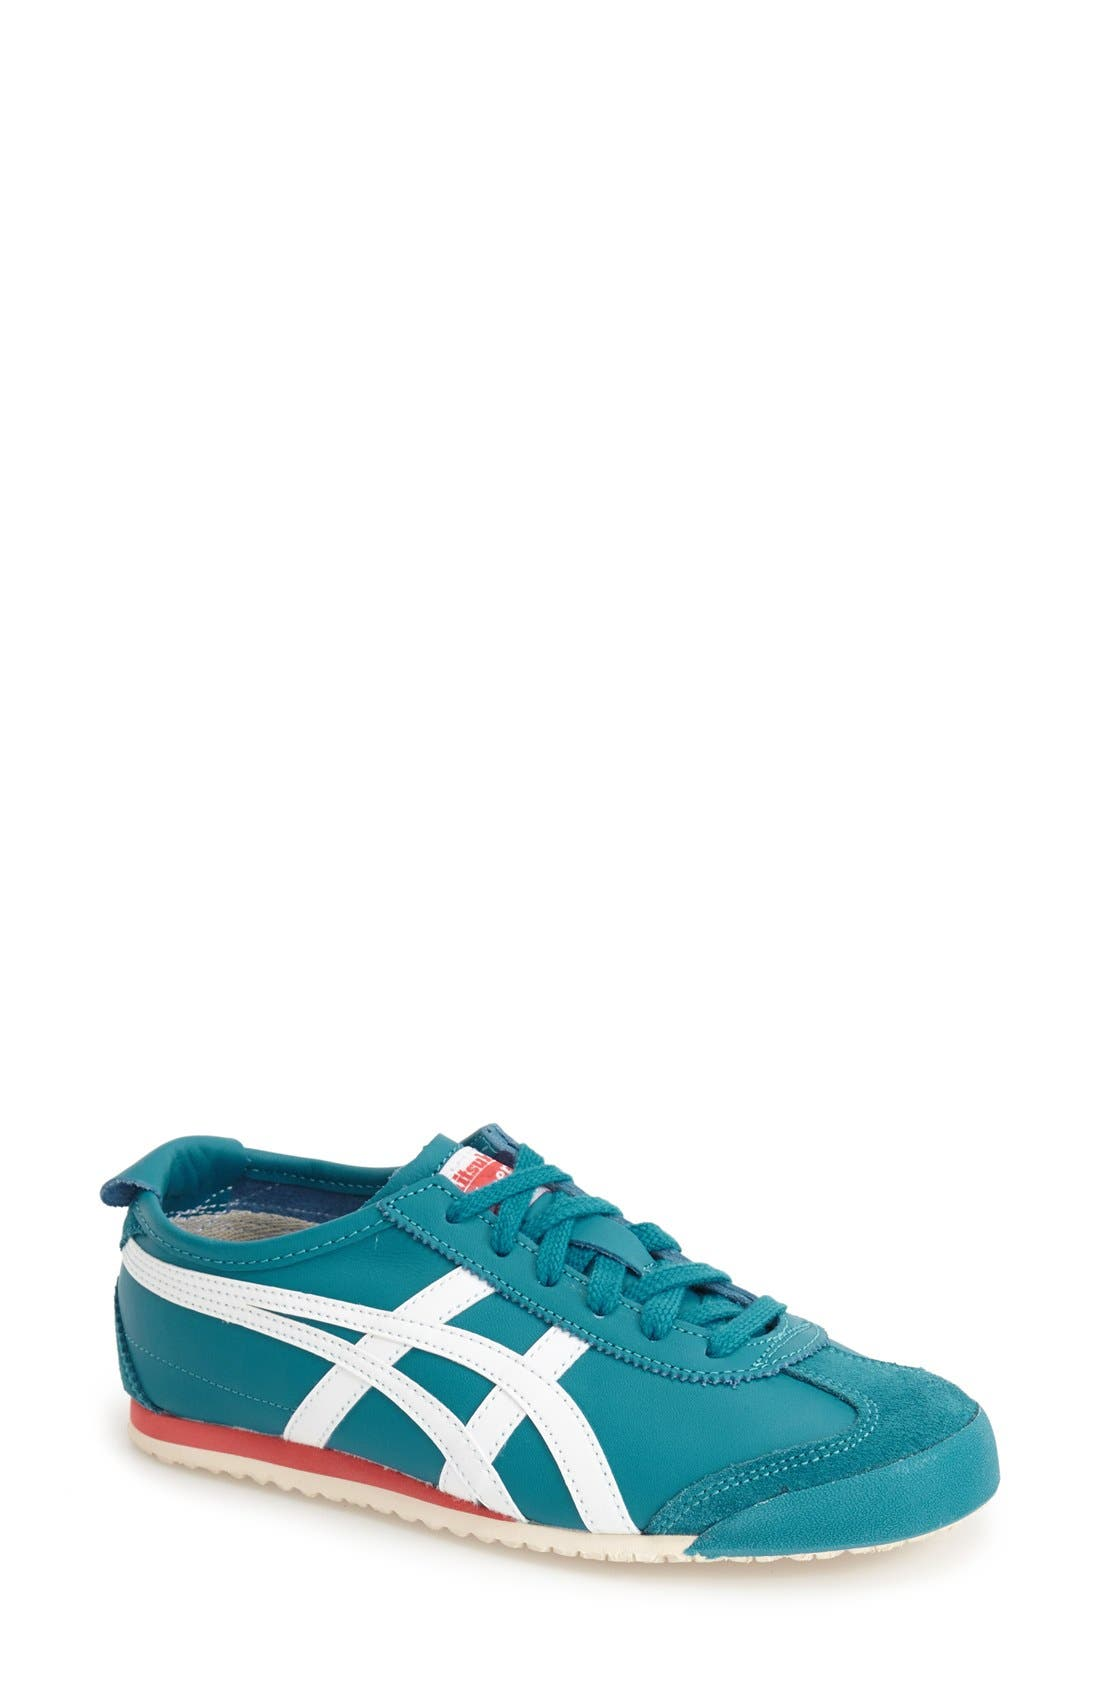 Alternate Image 1 Selected - Onitsuka Tiger™ 'Mexico 66™' Sneaker (Women)